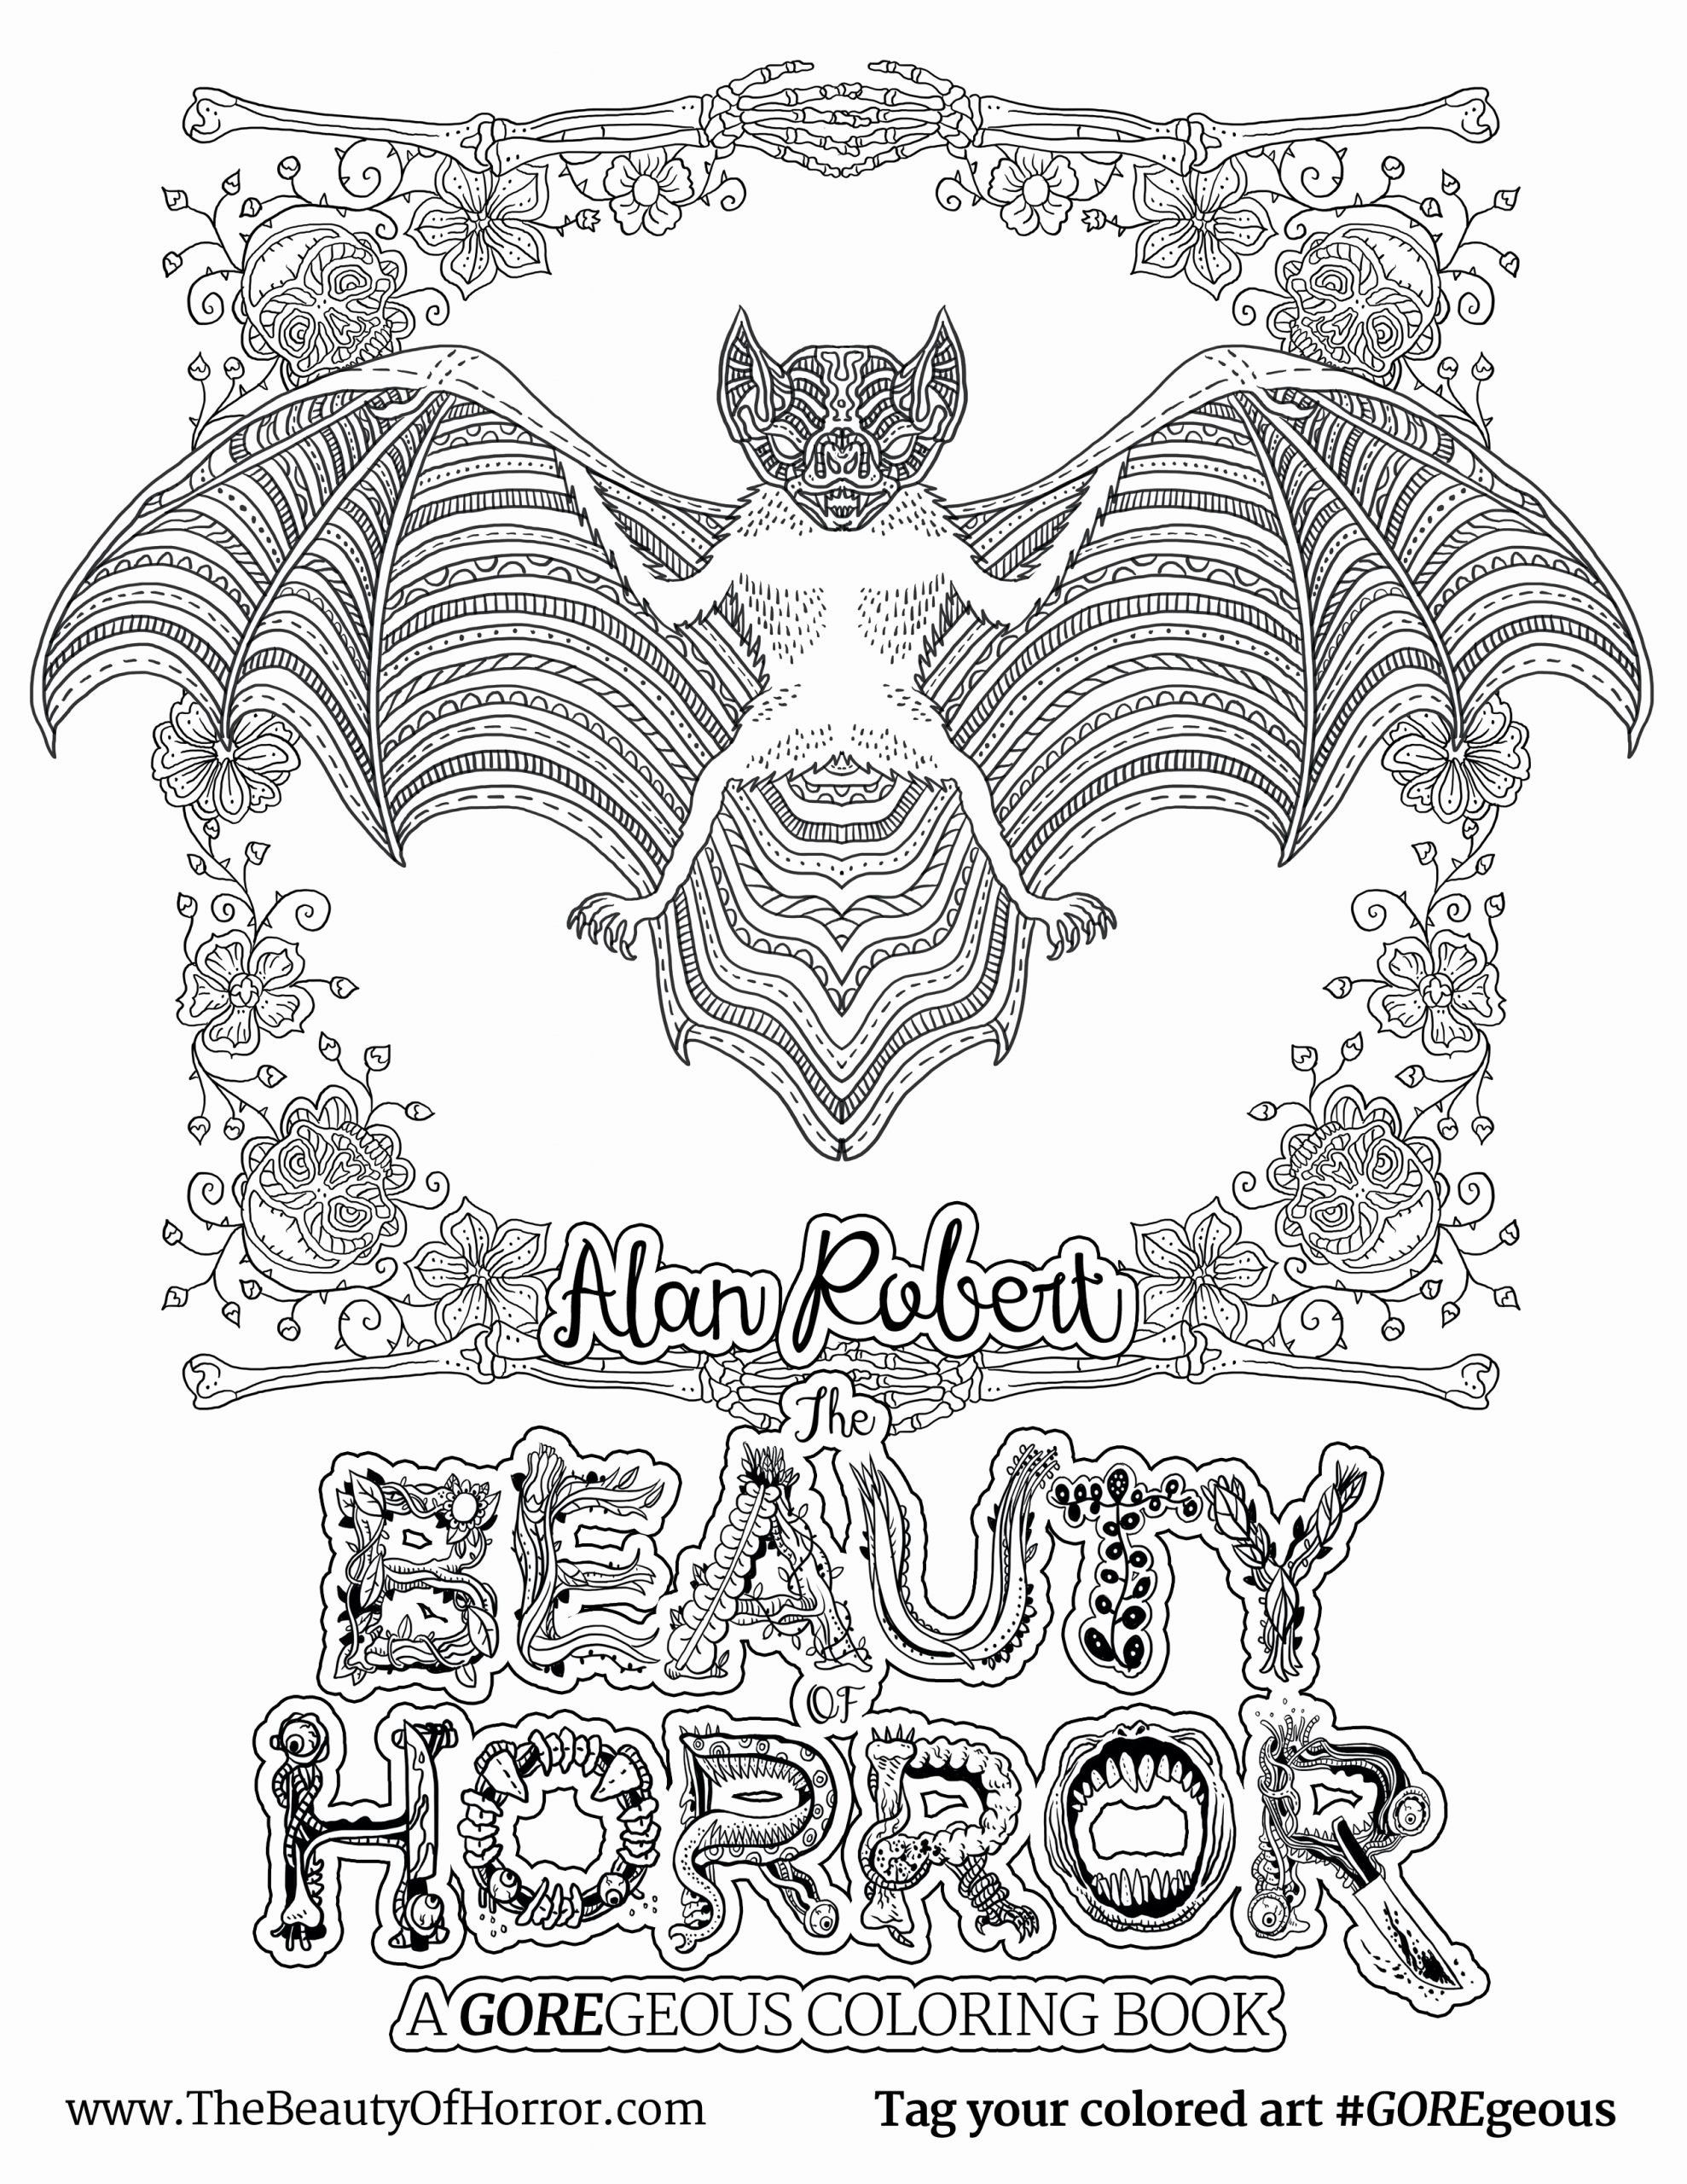 The Beauty Of Horror Coloring Book Beautiful The Beauty Horror Creepy Coloring Book Now Has A Sequel Coloring Books Travel Coloring Books Shark Coloring Pages